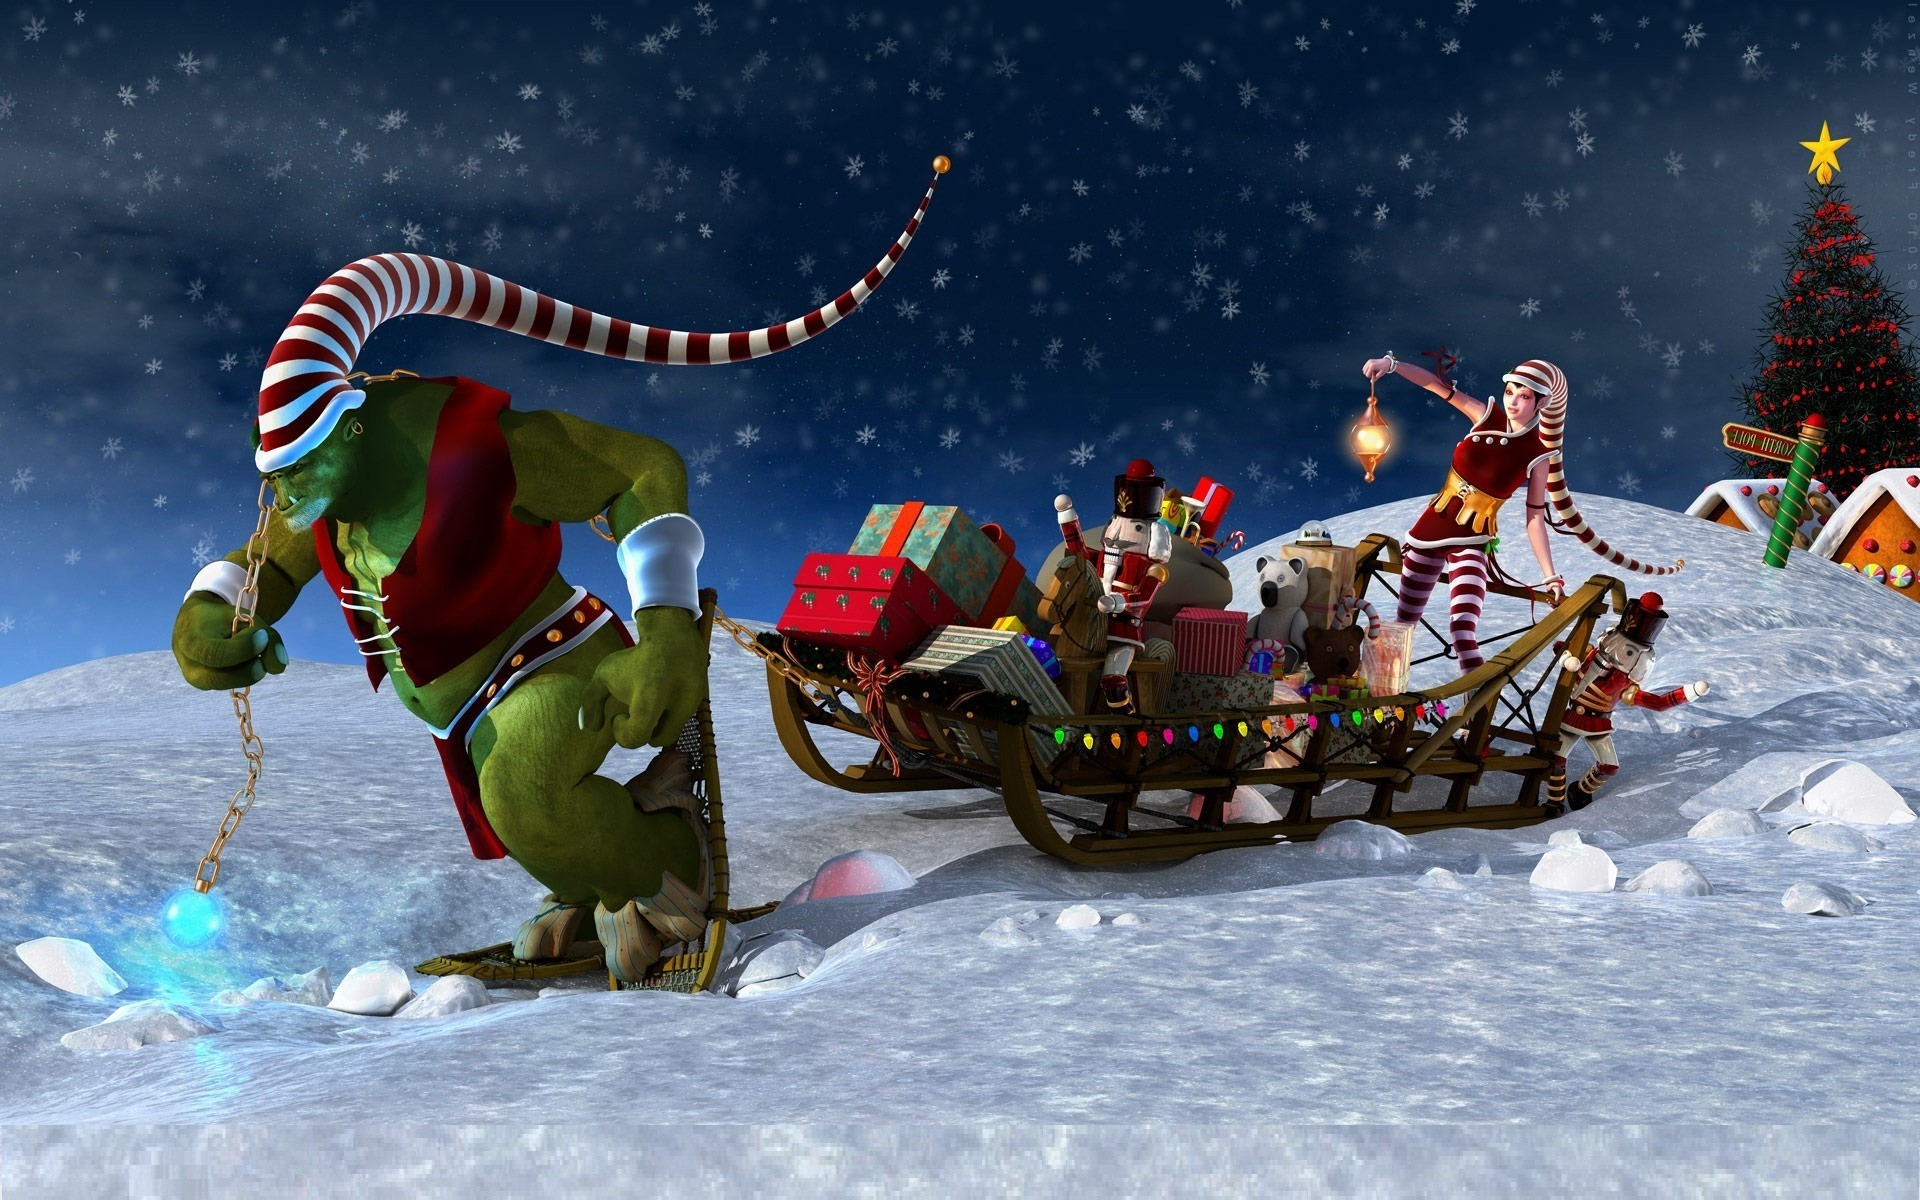 wallpaper details - Free Animated Christmas Screensavers